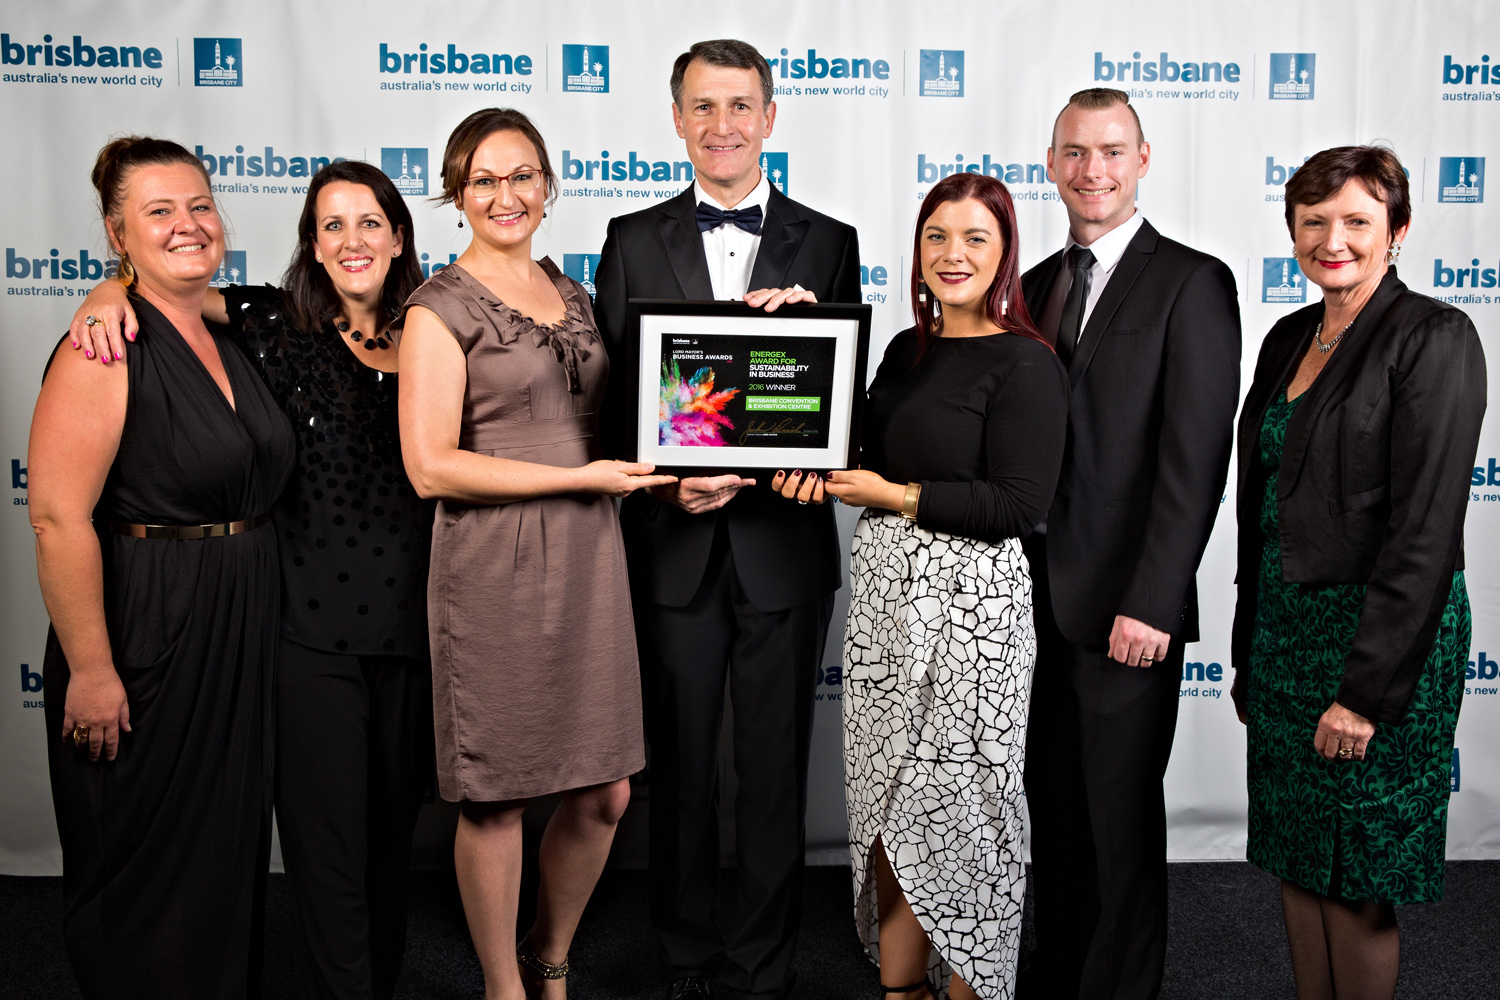 BCEC acceptance of Lord Mayors business award